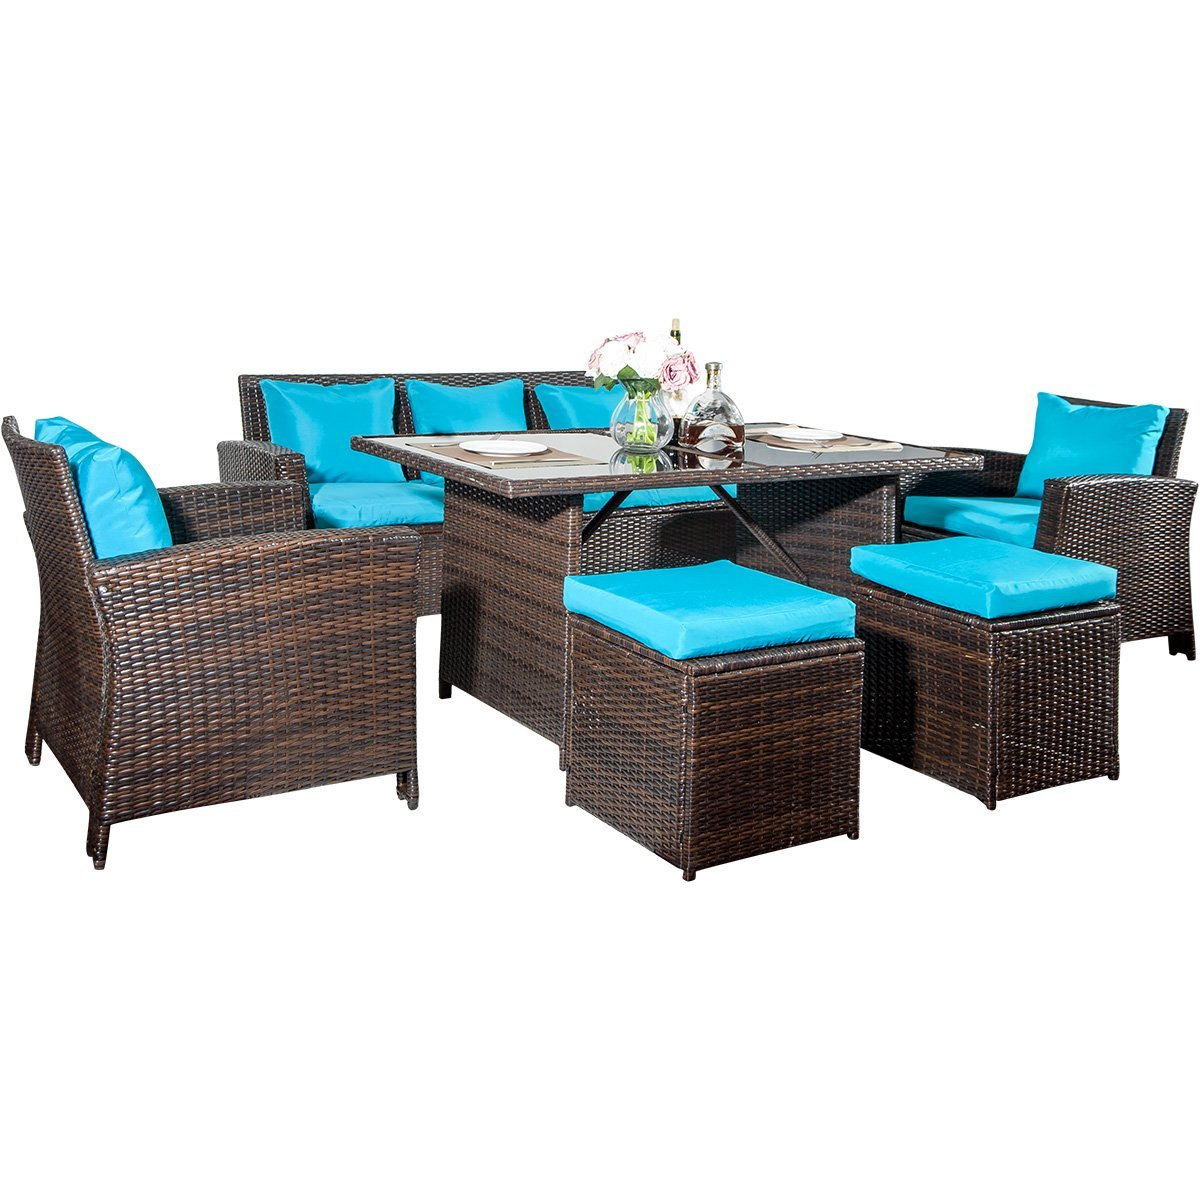 Luxury Furniture Review: Merax 6- Piece Patio Furniture ... on Fine Living Patio Set id=81491